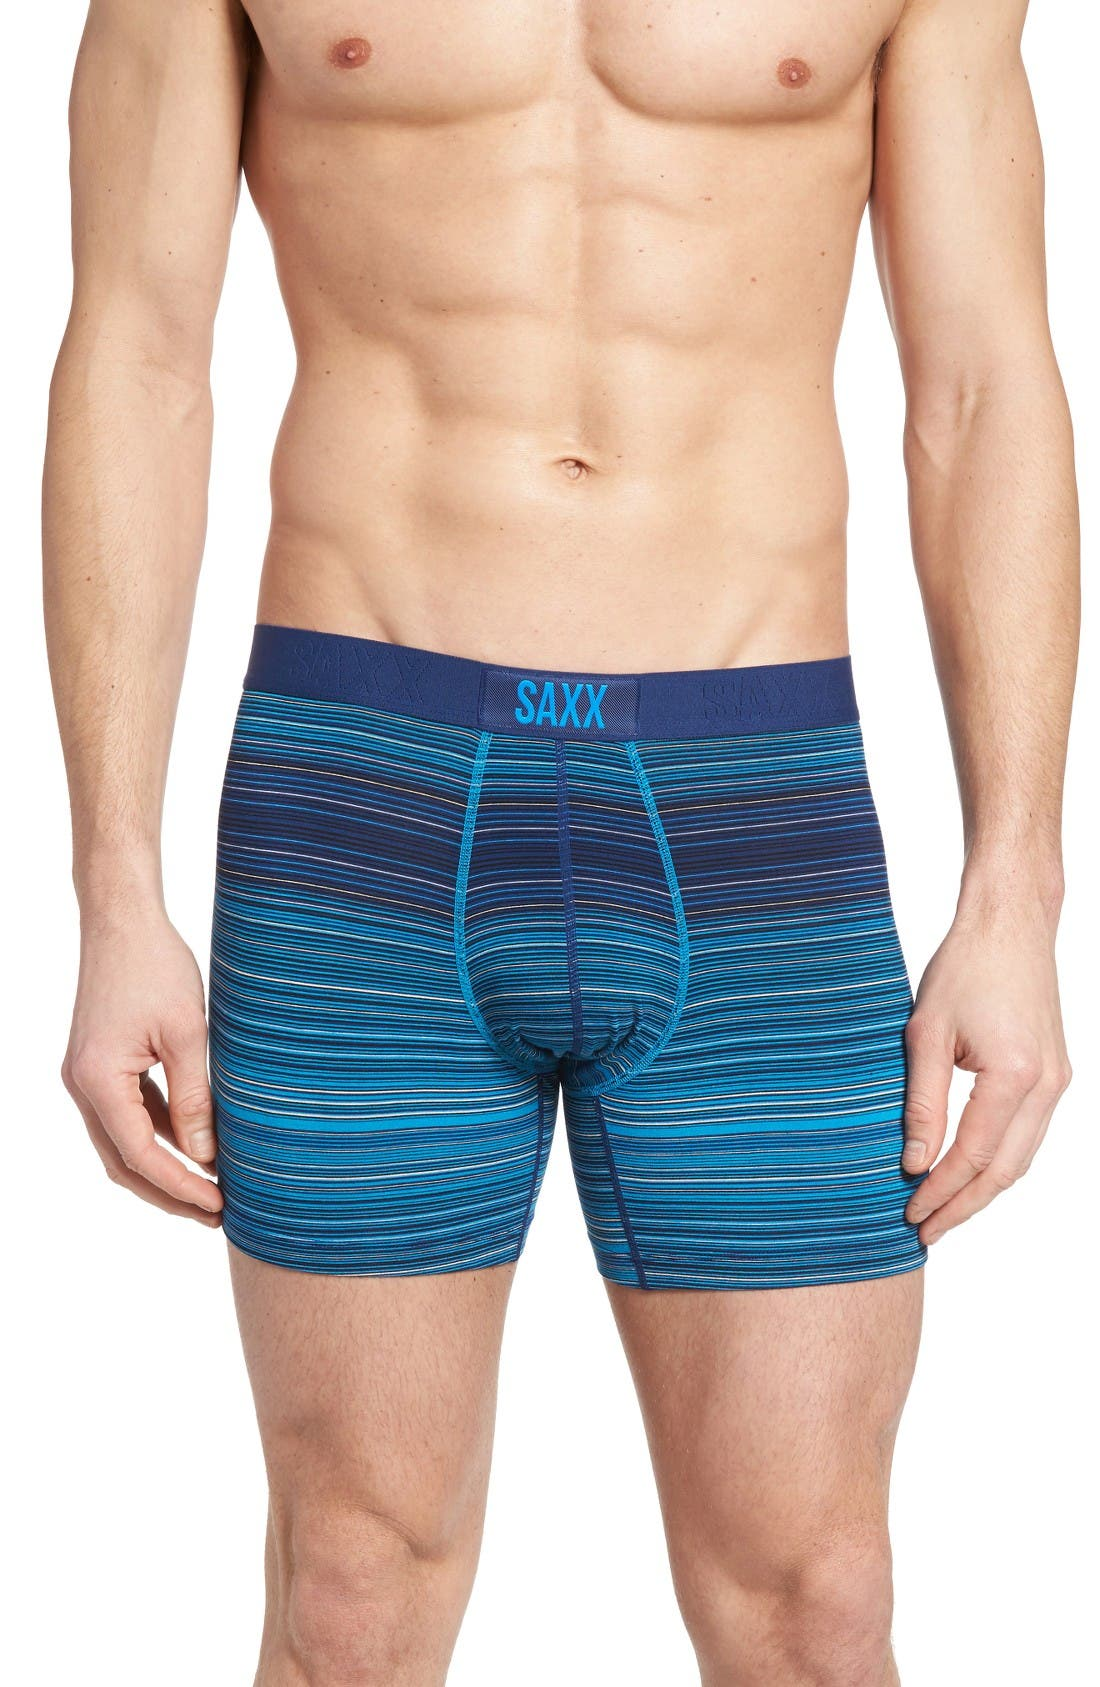 Alternate Image 1 Selected - SAXX 'Vibe' Stretch Boxer Briefs